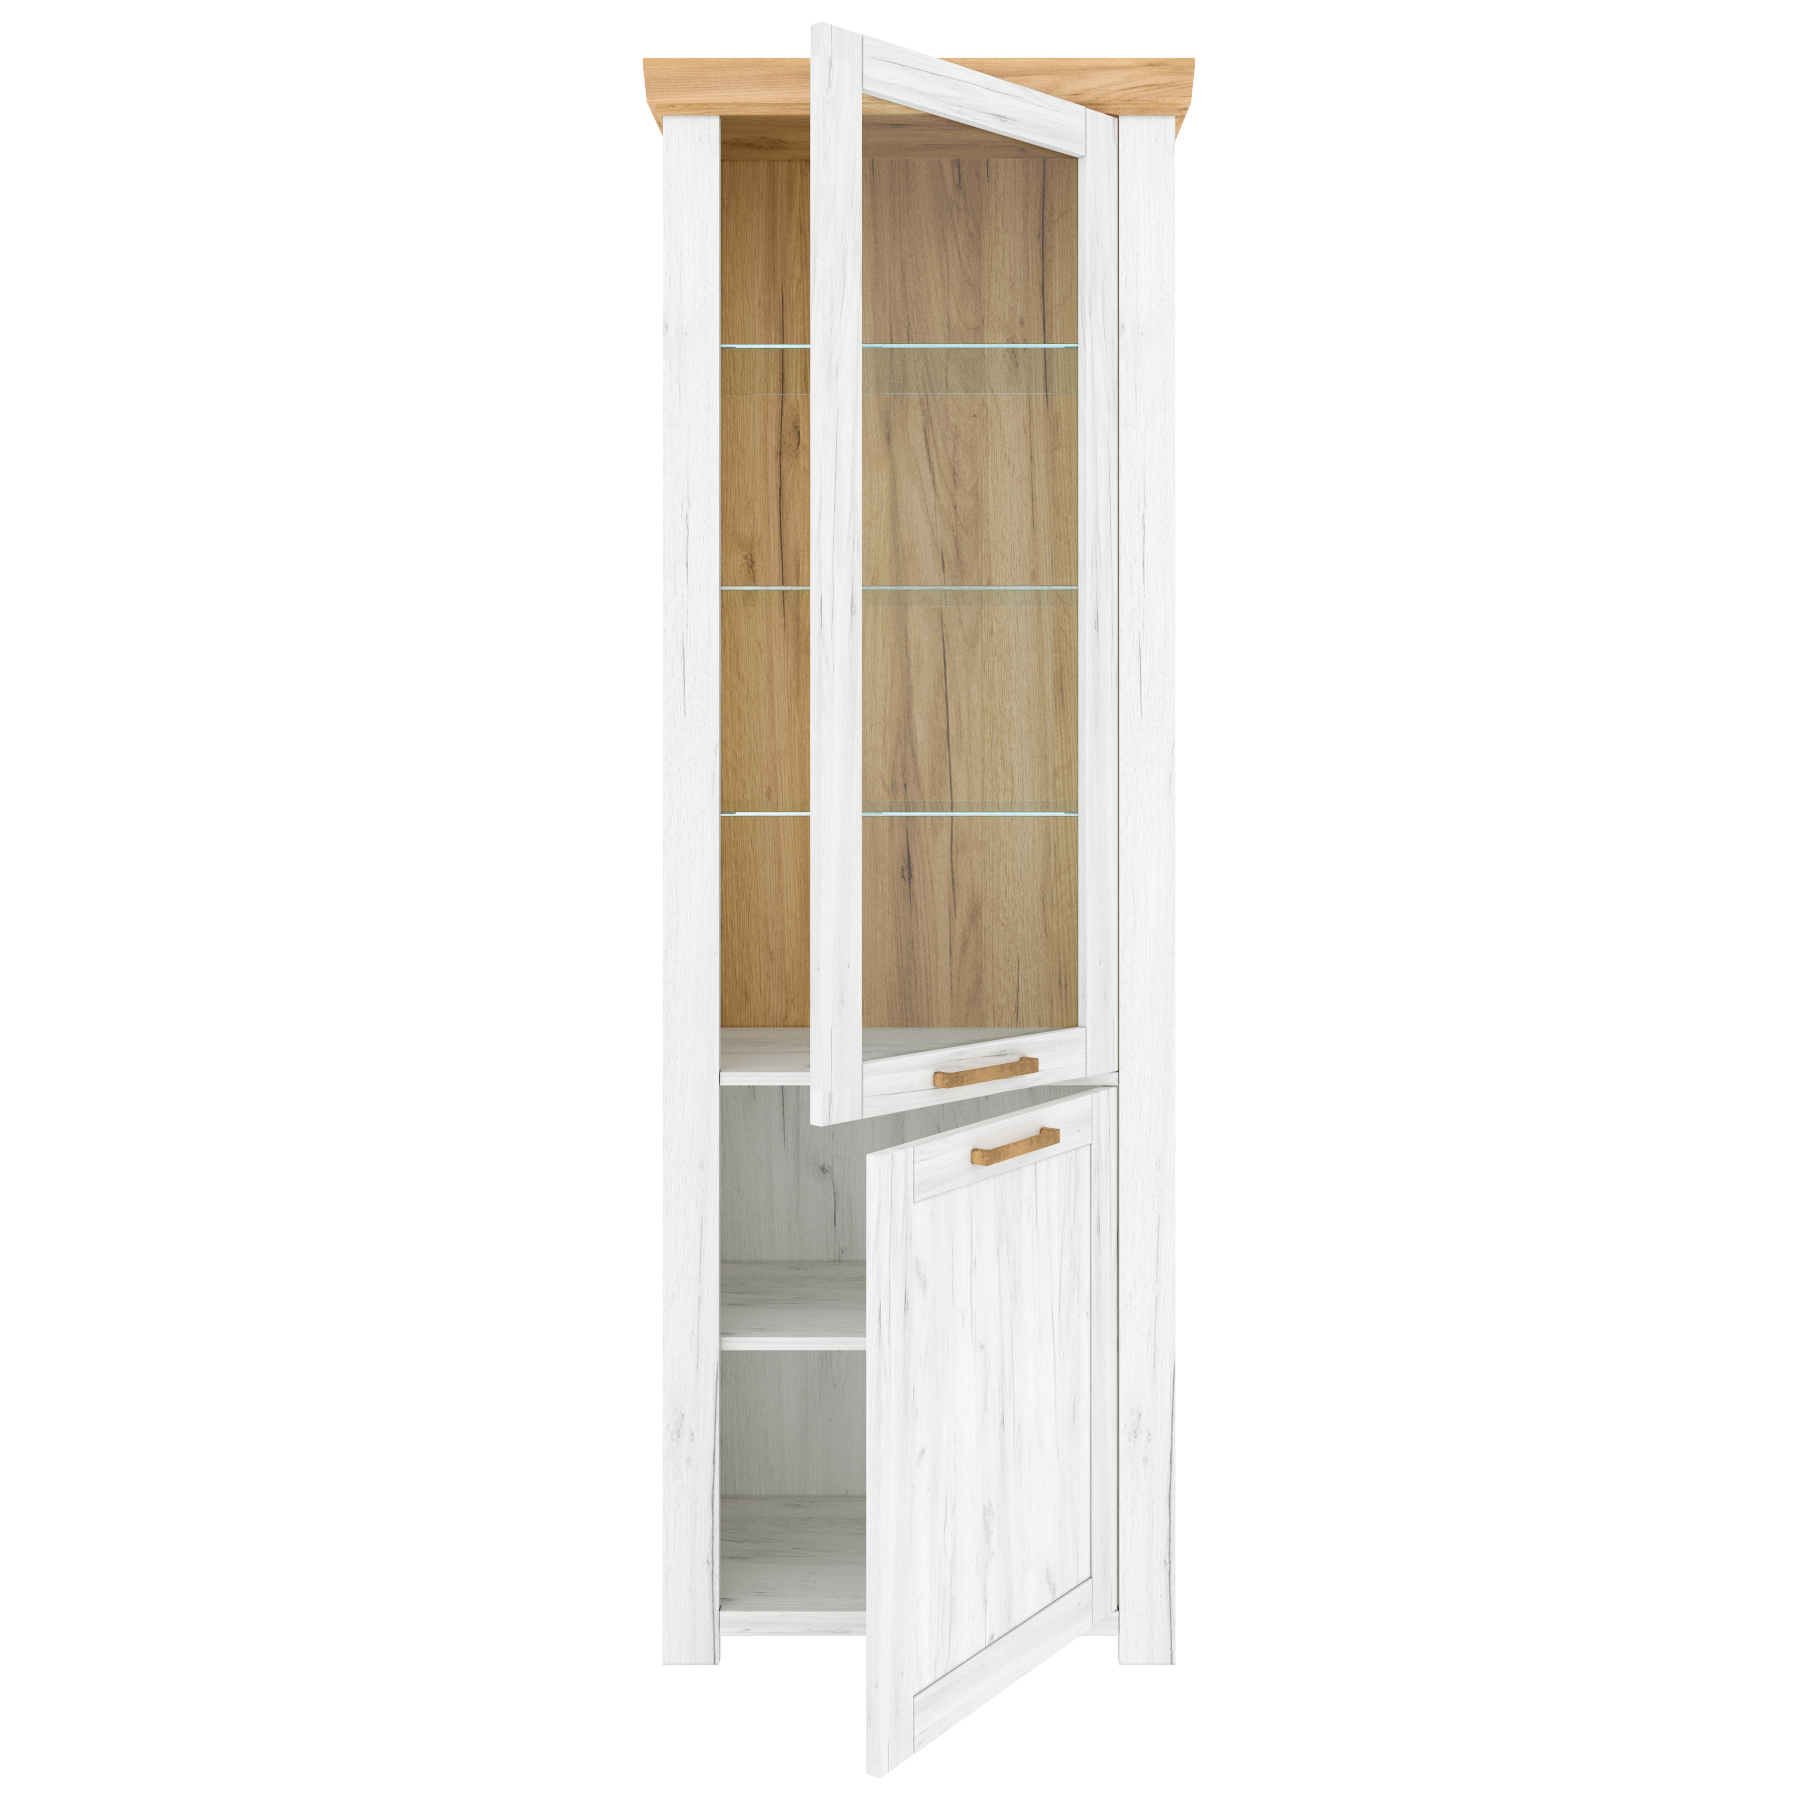 Picture of SUDBURY A Display Cabinet